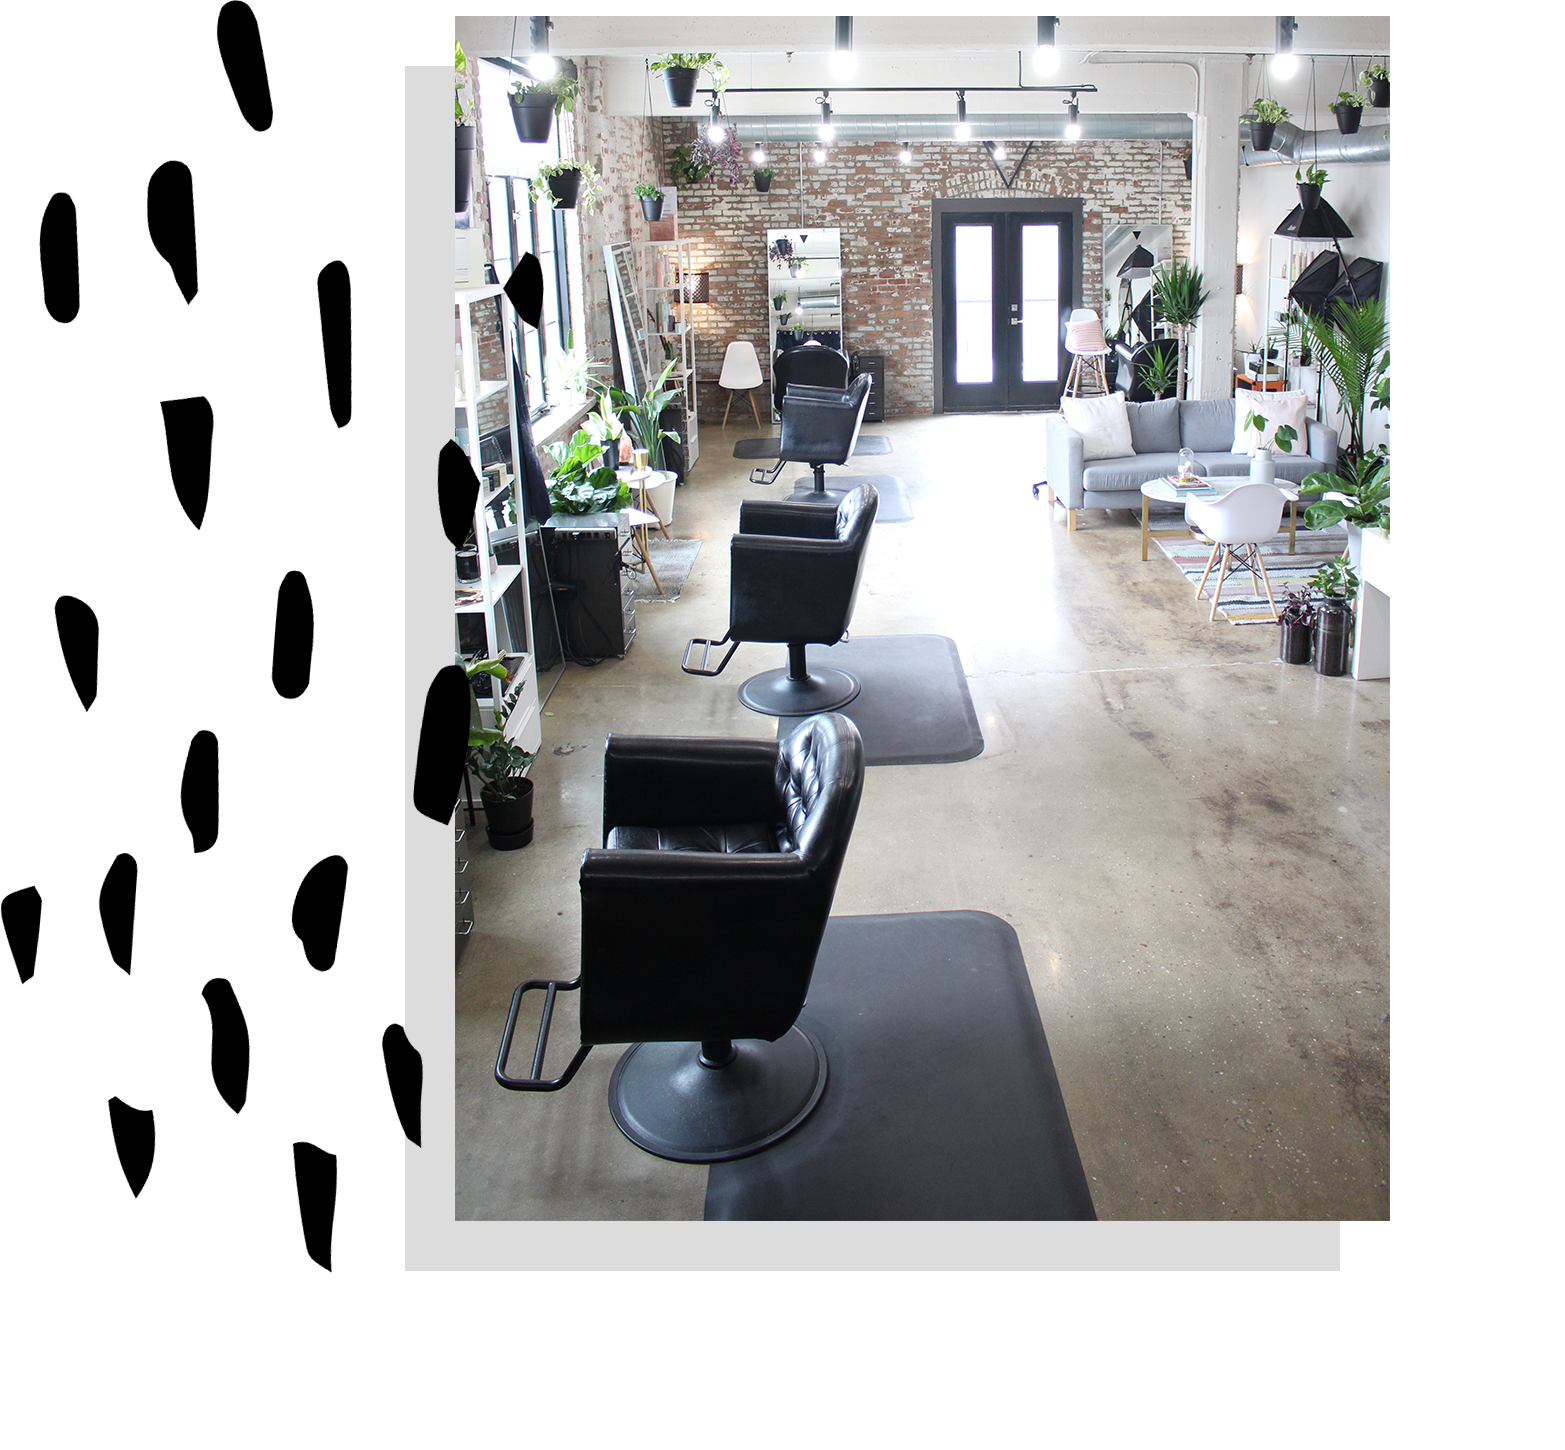 A BIT ABOUT US - Located in the heart of Downtown Jersey City, on the fourth floor of the brand new Vito A Lofts building, Love Lane Salon is where the magic happens. Founded by a team of creatives that passionately respects their craft, this space was dreamt up to be innovative and eccentric, but most importantly personalized.The team at Love Lane Salon is by no means ordinary. Each technician has a unique specialization backed by years of top industry training and education. Love Lane Salon was built on a foundation of beauty, style, precision, and integrity. Those ideals will never be compromised. #INHAIRWETRUST